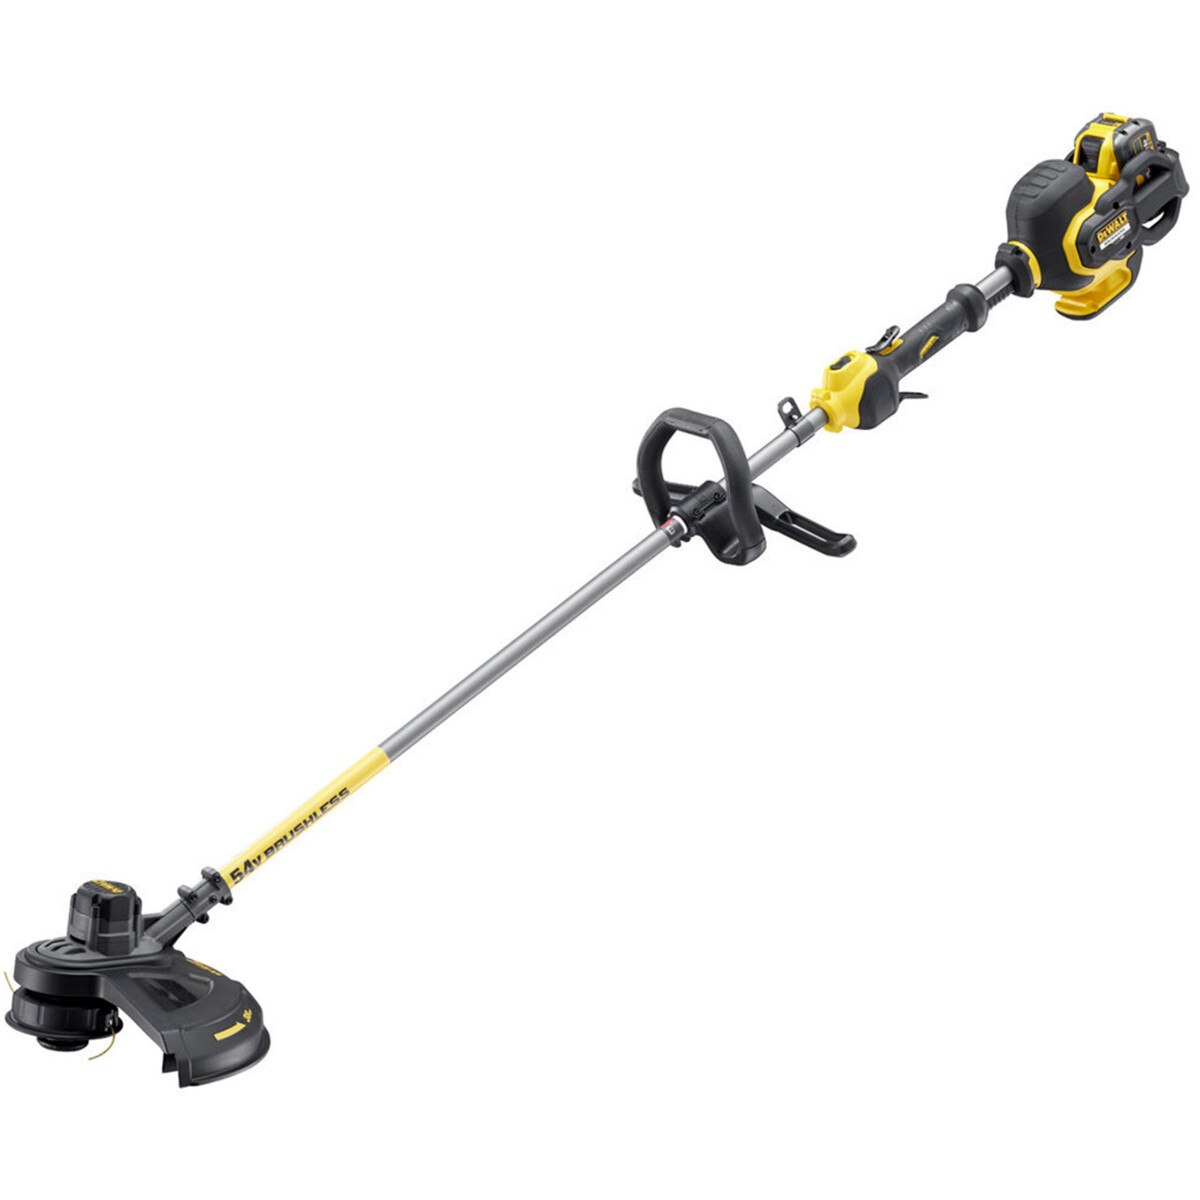 DeWalt DCM571X1-GB 54V  XR Flexvolt Brush Cutter with 1x 9.0Ah Battery